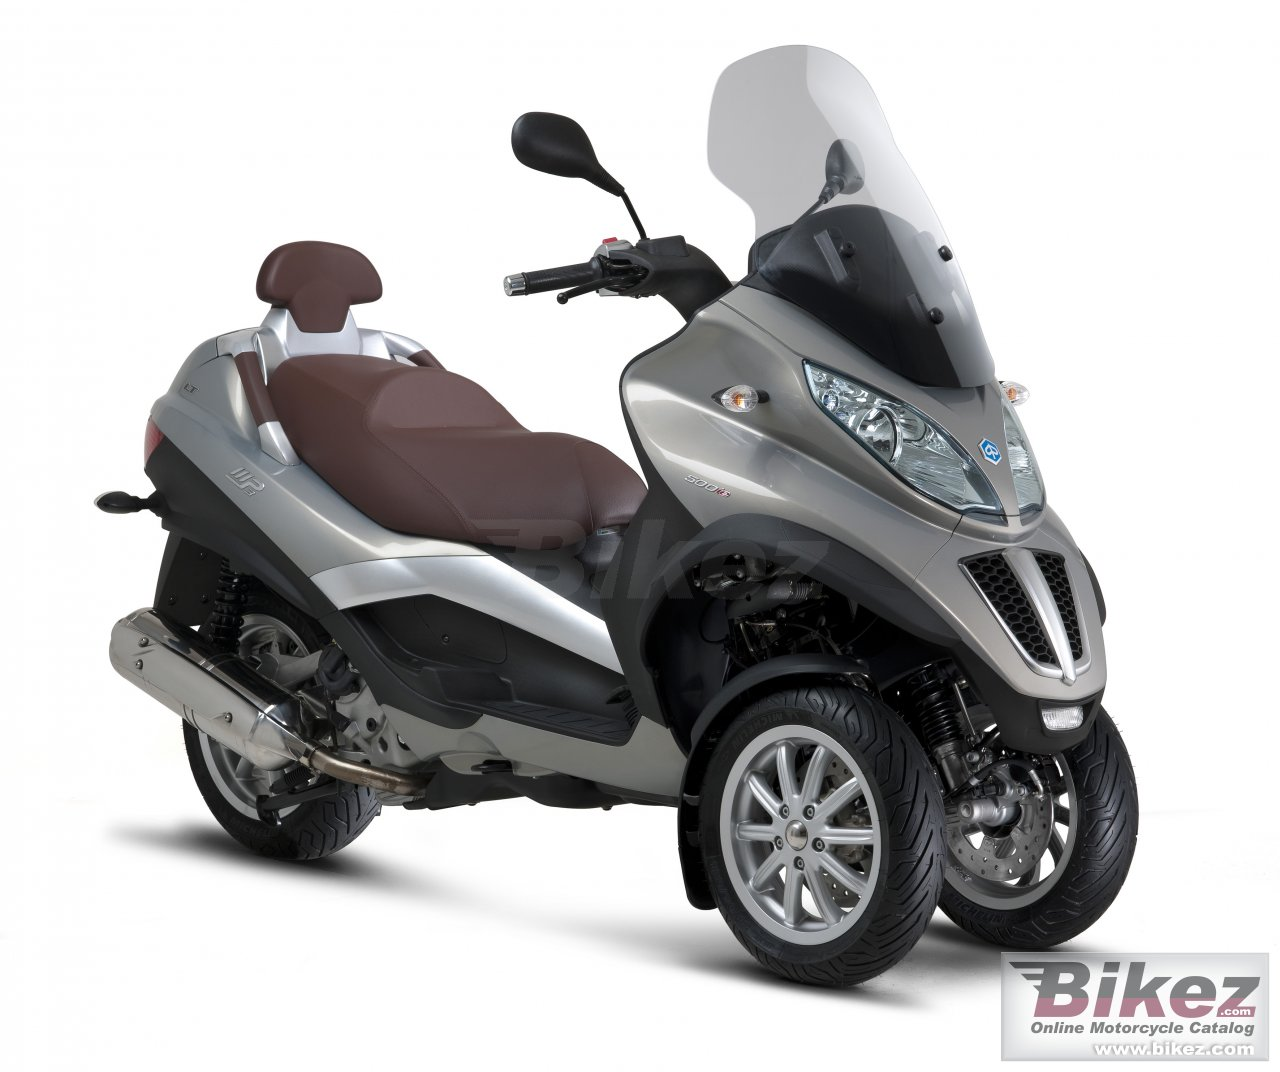 Big Piaggio mp3 500 picture and wallpaper from Bikez.com